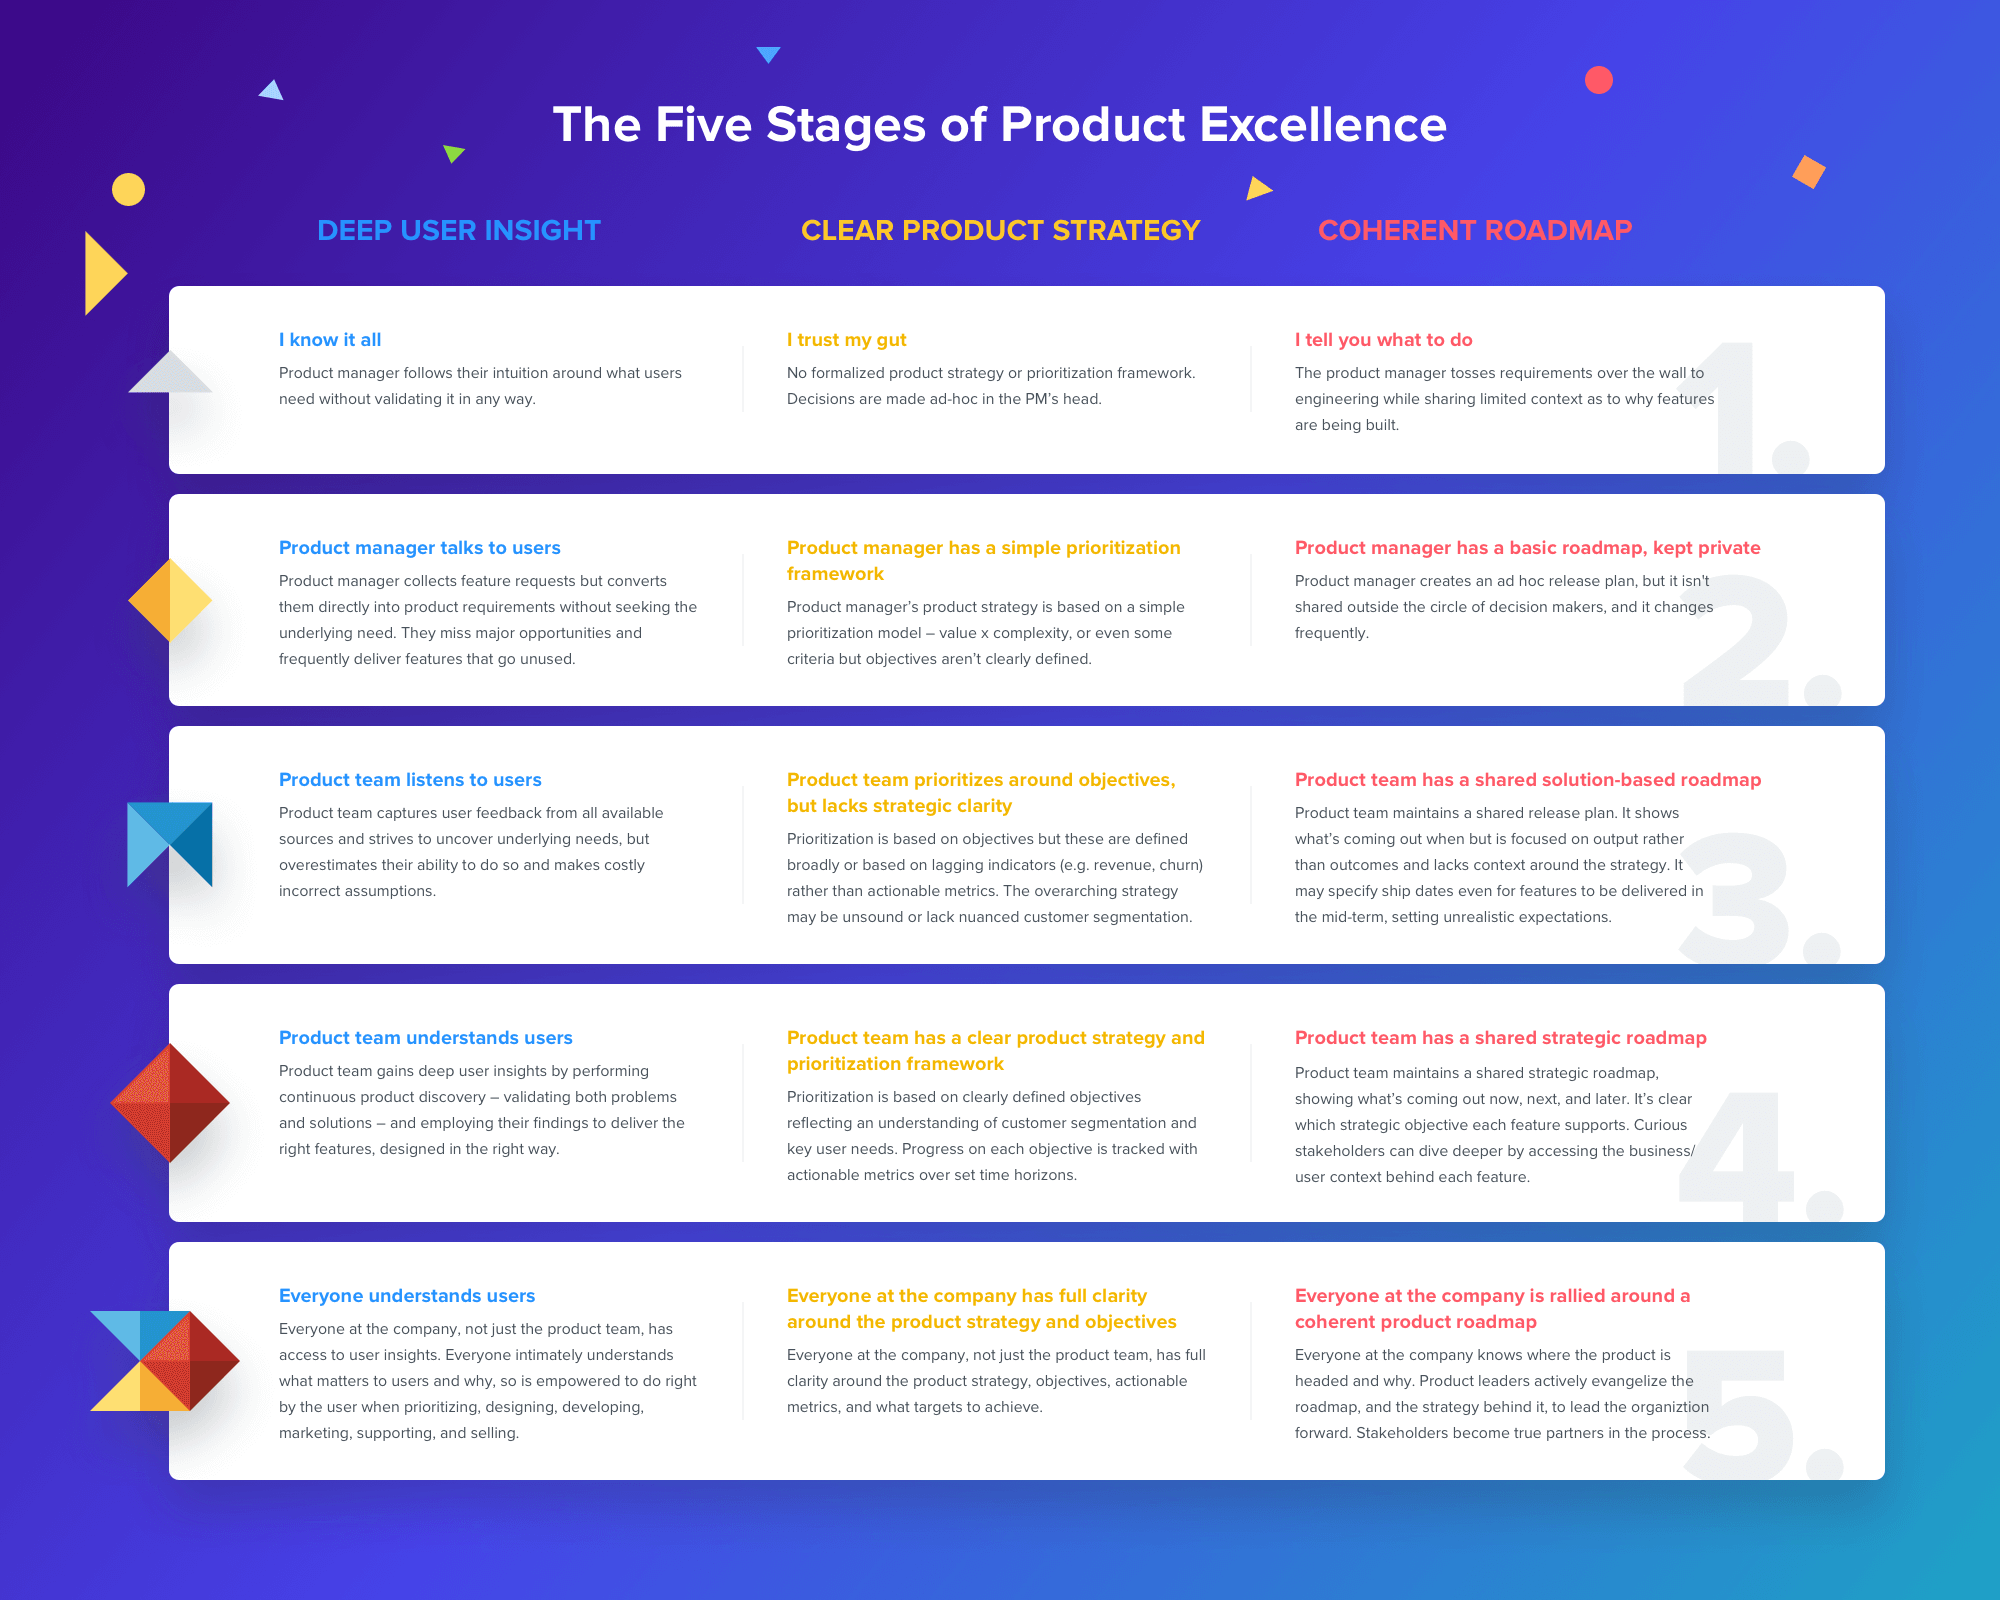 The Five Stages of Product Excellence